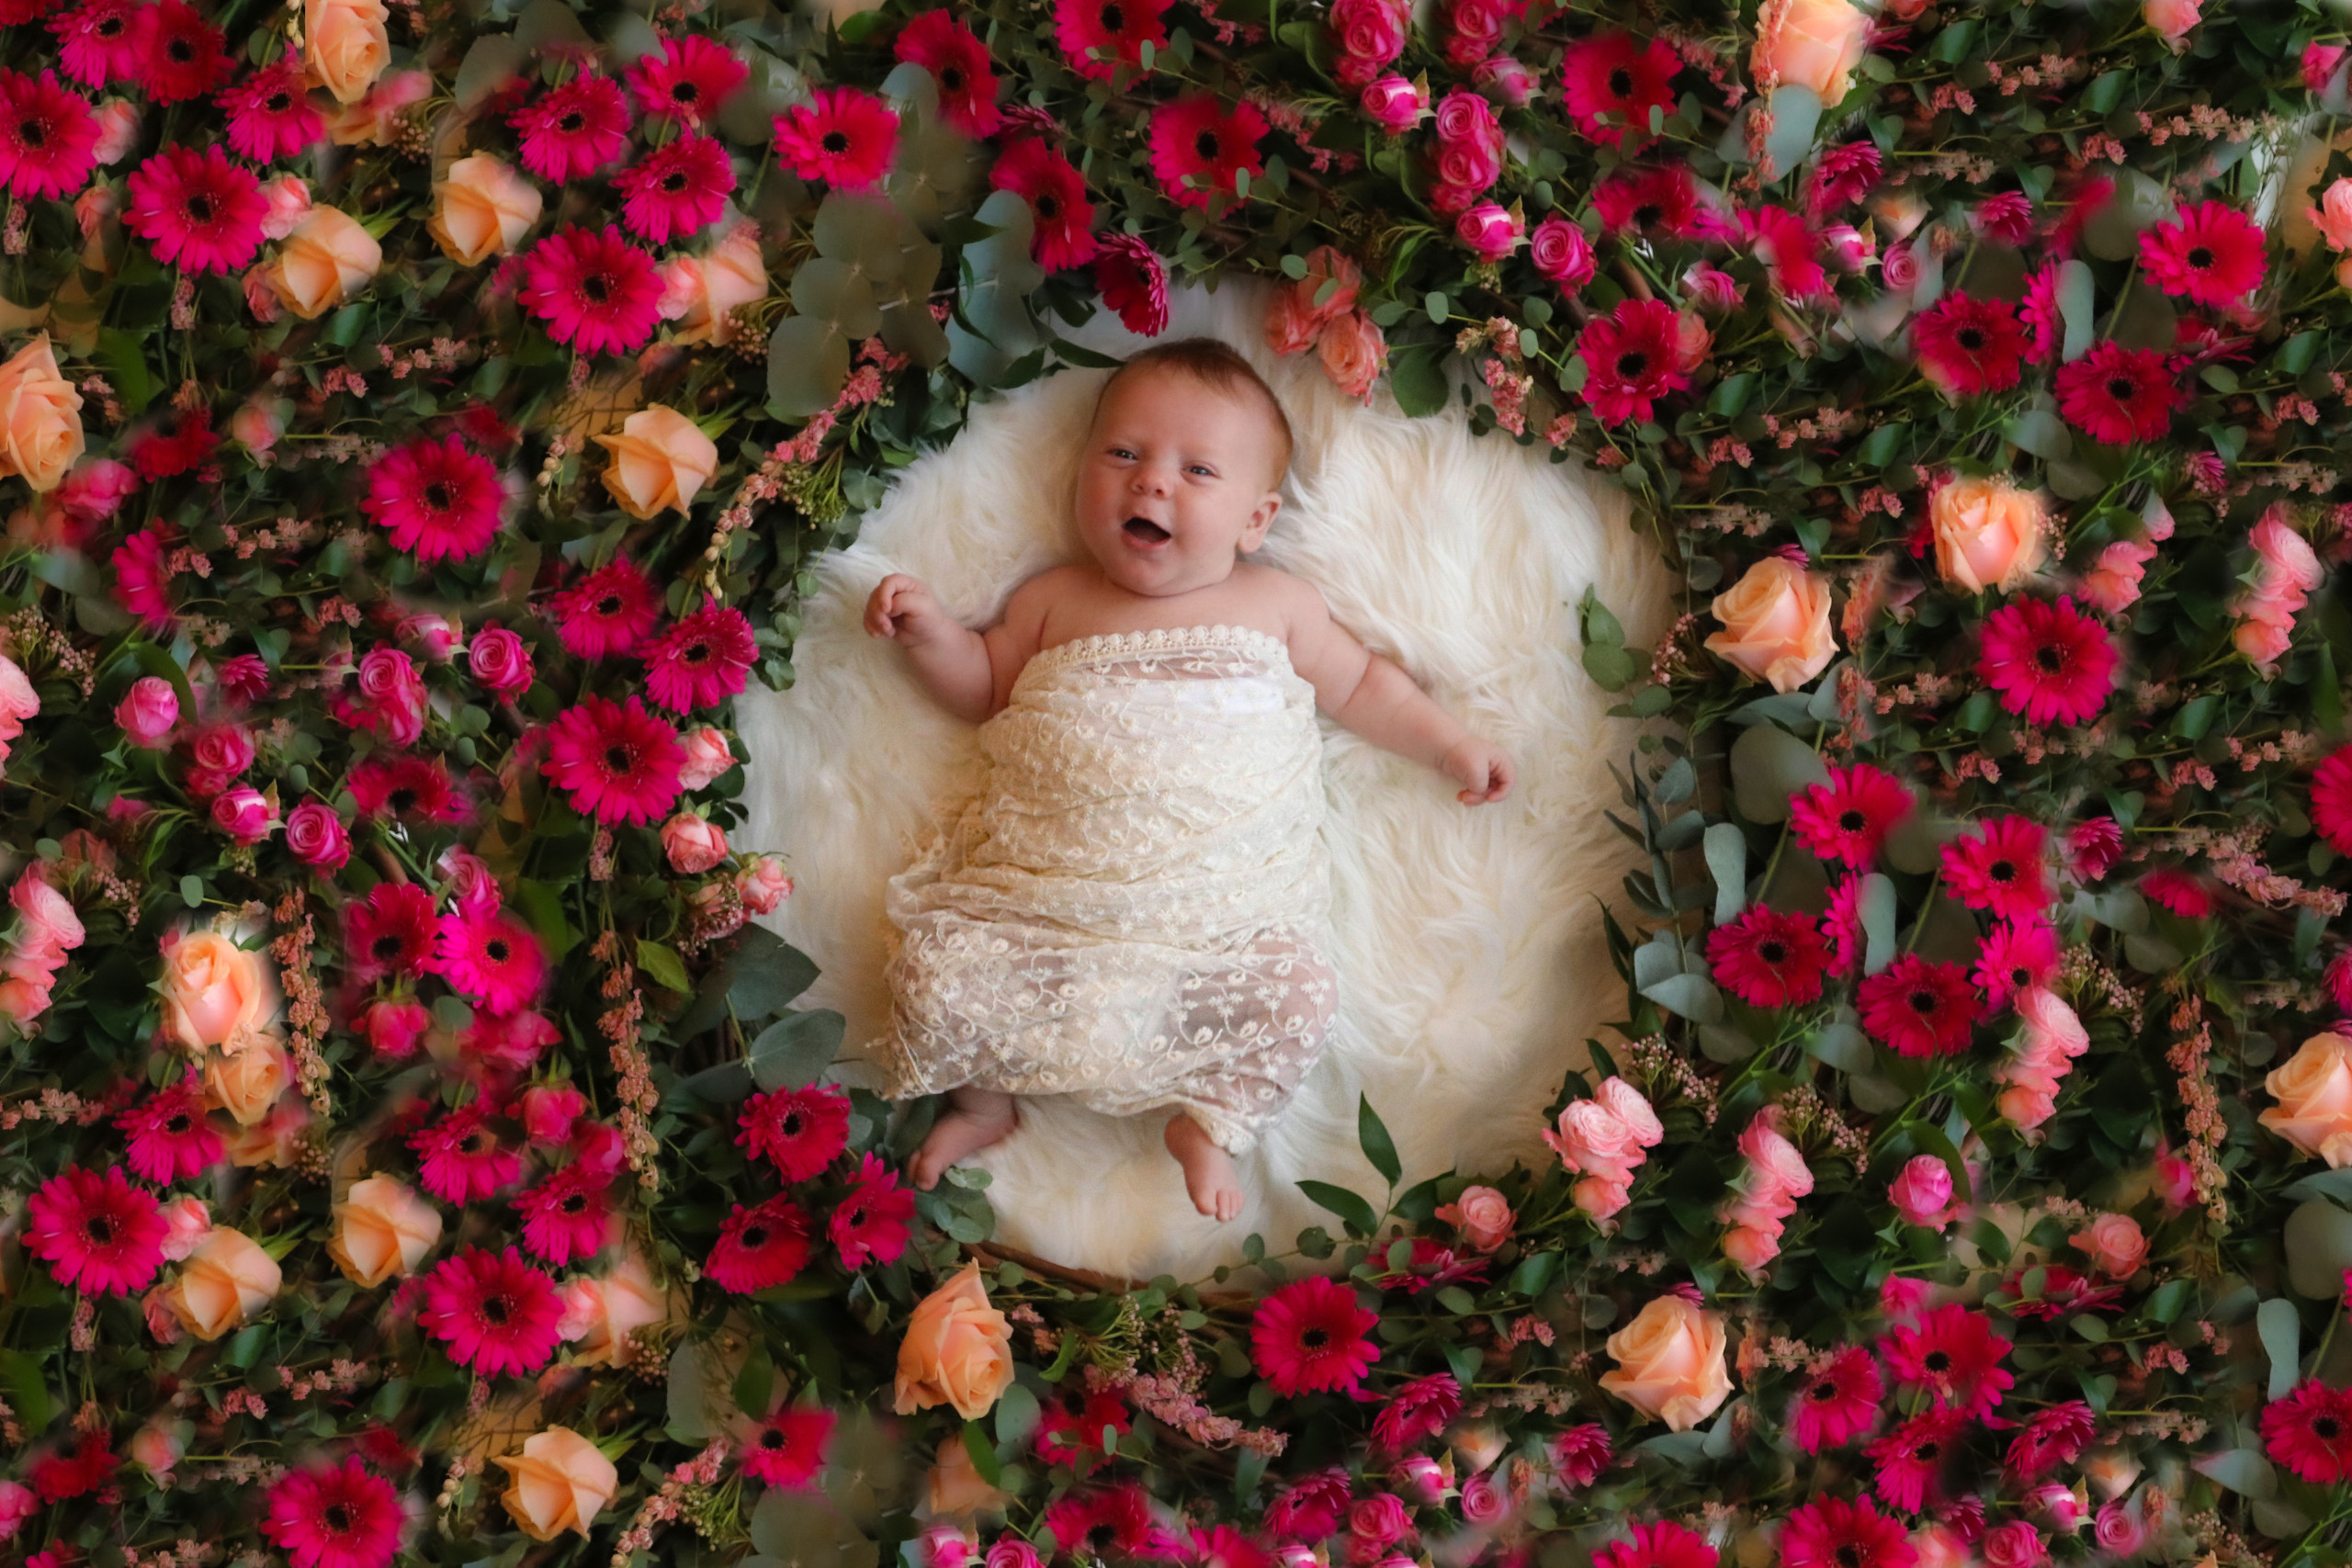 newborn laying on bed of red and pink flowers